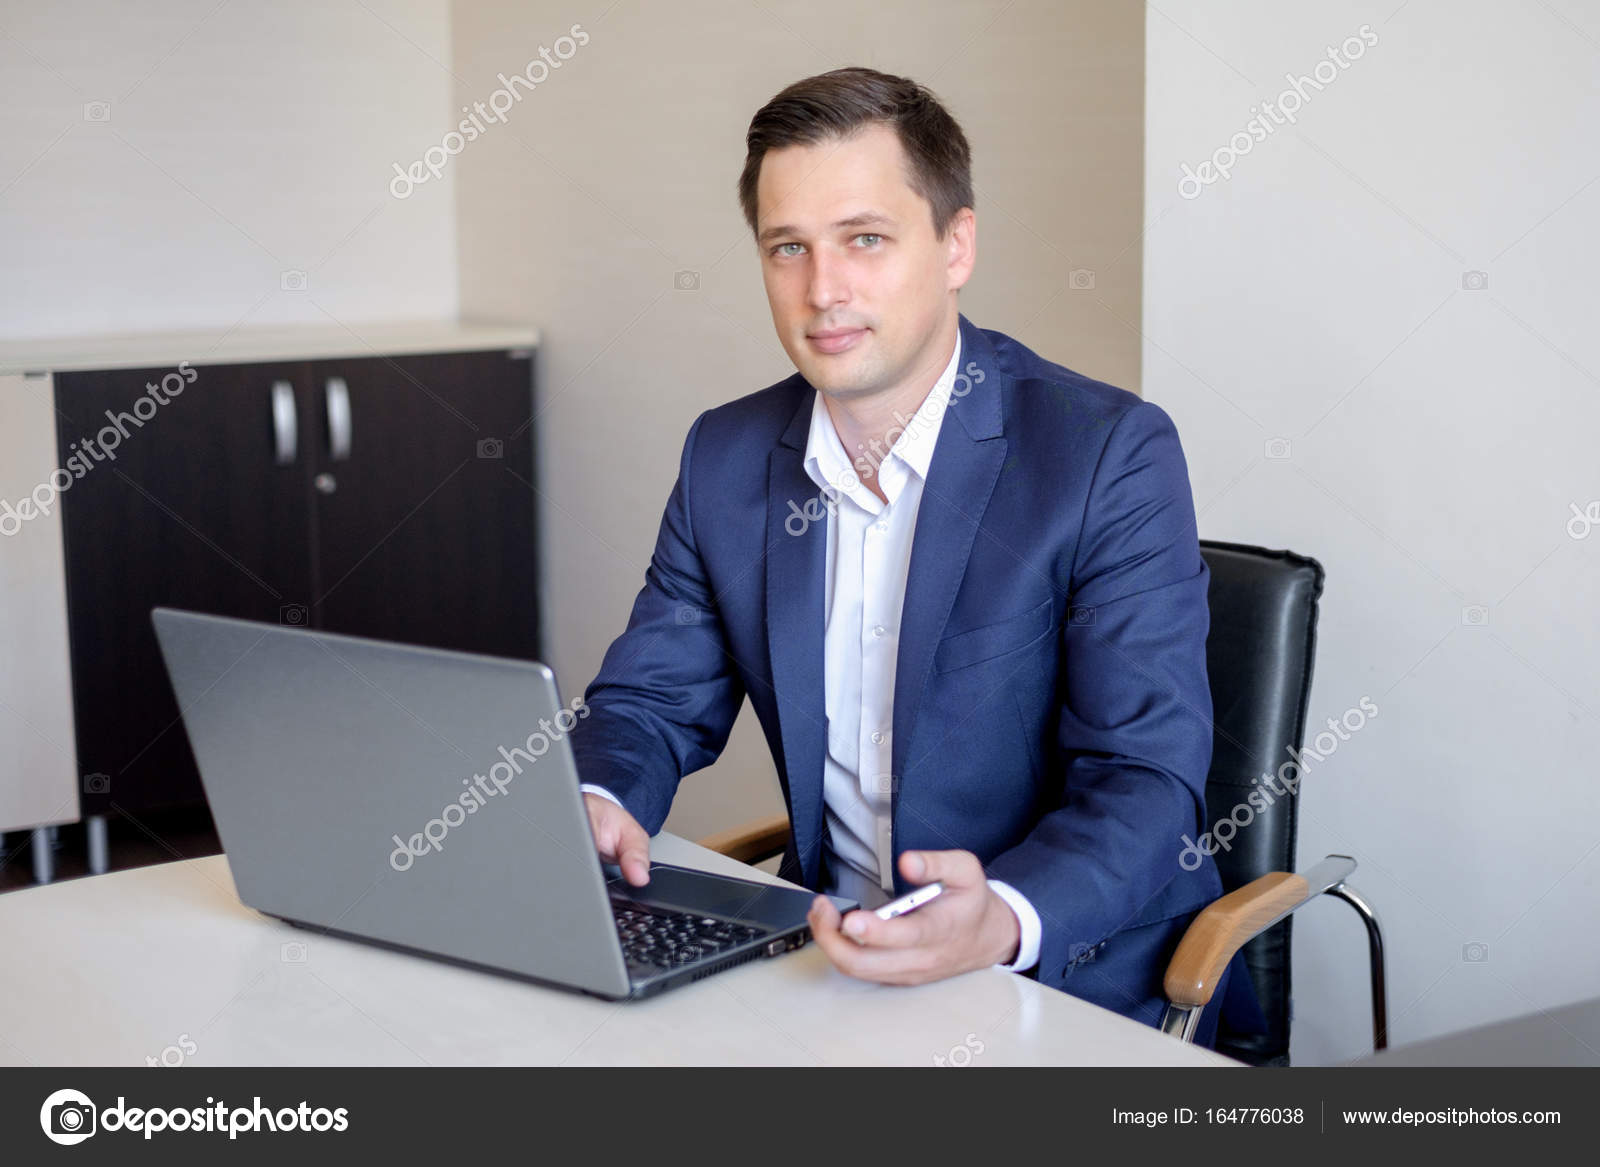 Smiling Young Businessman Sitting Behind His Desk With